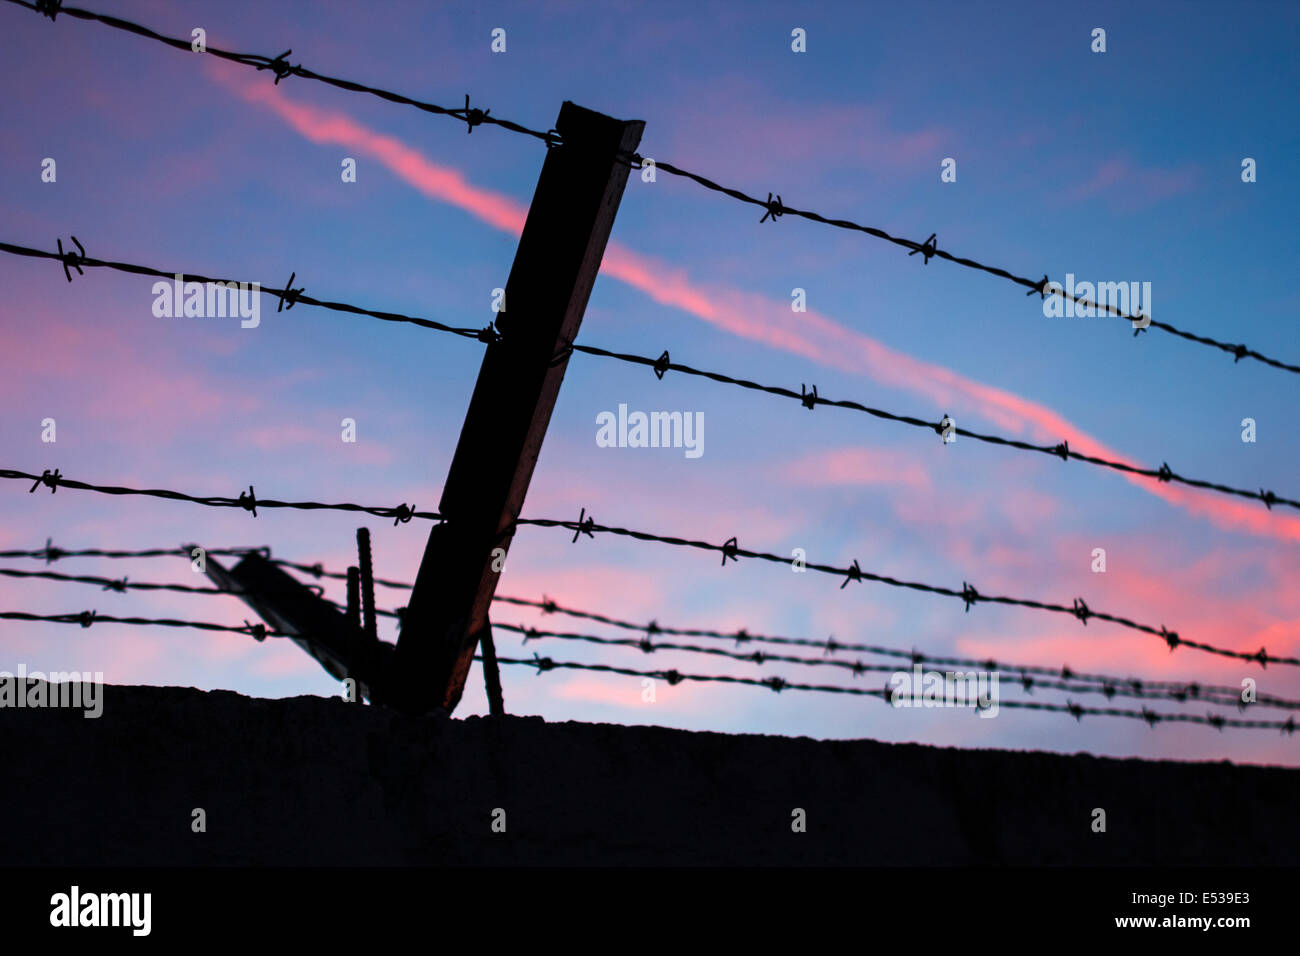 Barbed wire pink blu sky - Stock Image